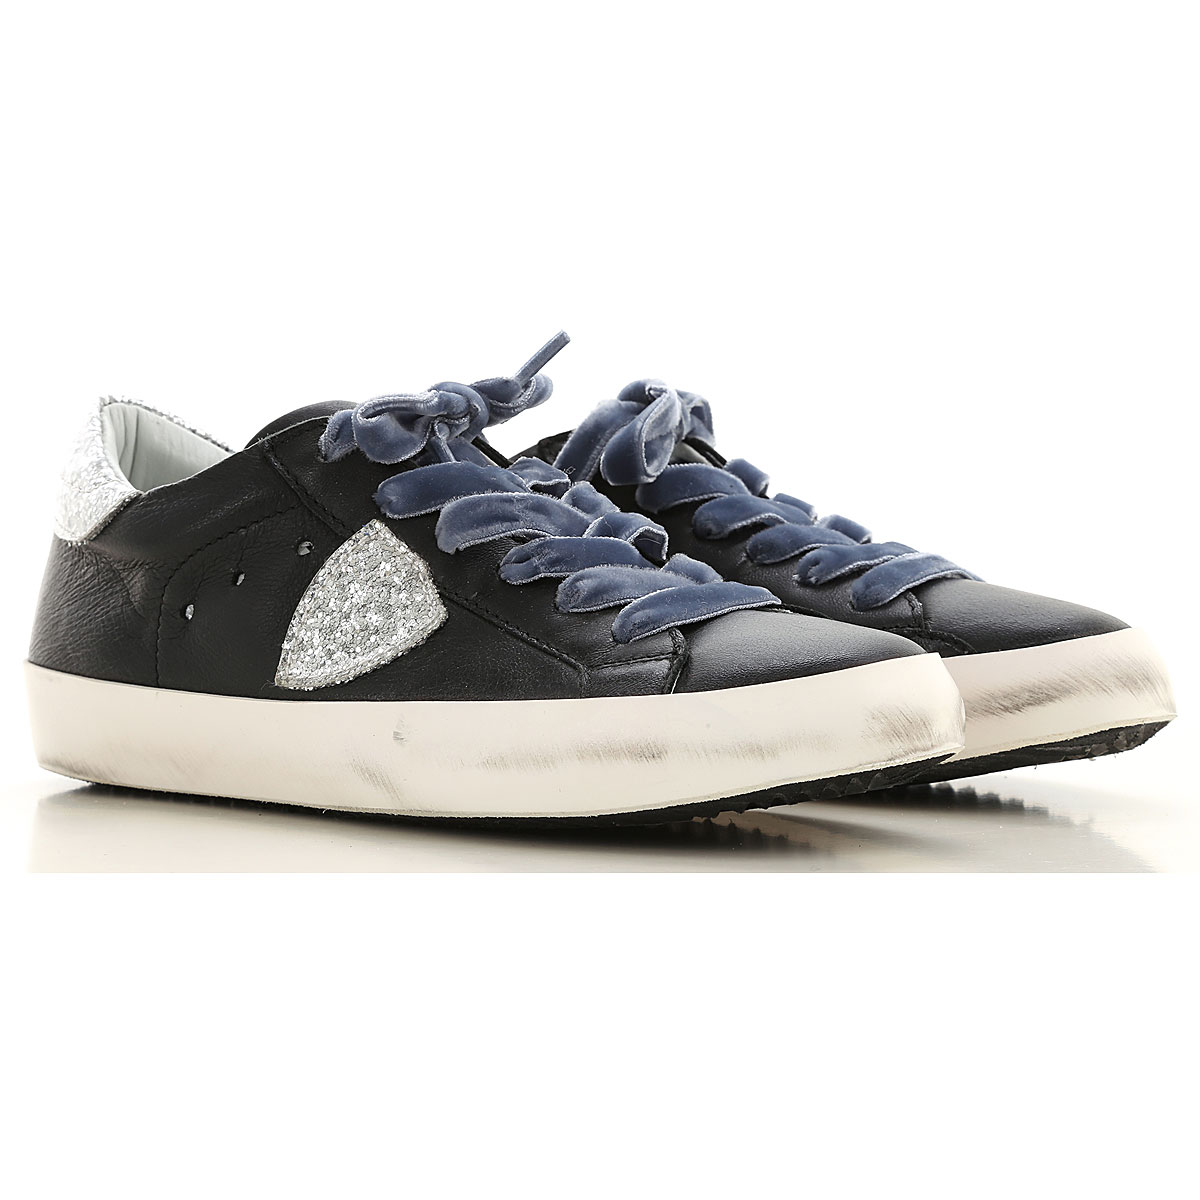 Philippe Model Kids Shoes for Girls On Sale in Outlet, Black, Leather, 2019, 31 32 34